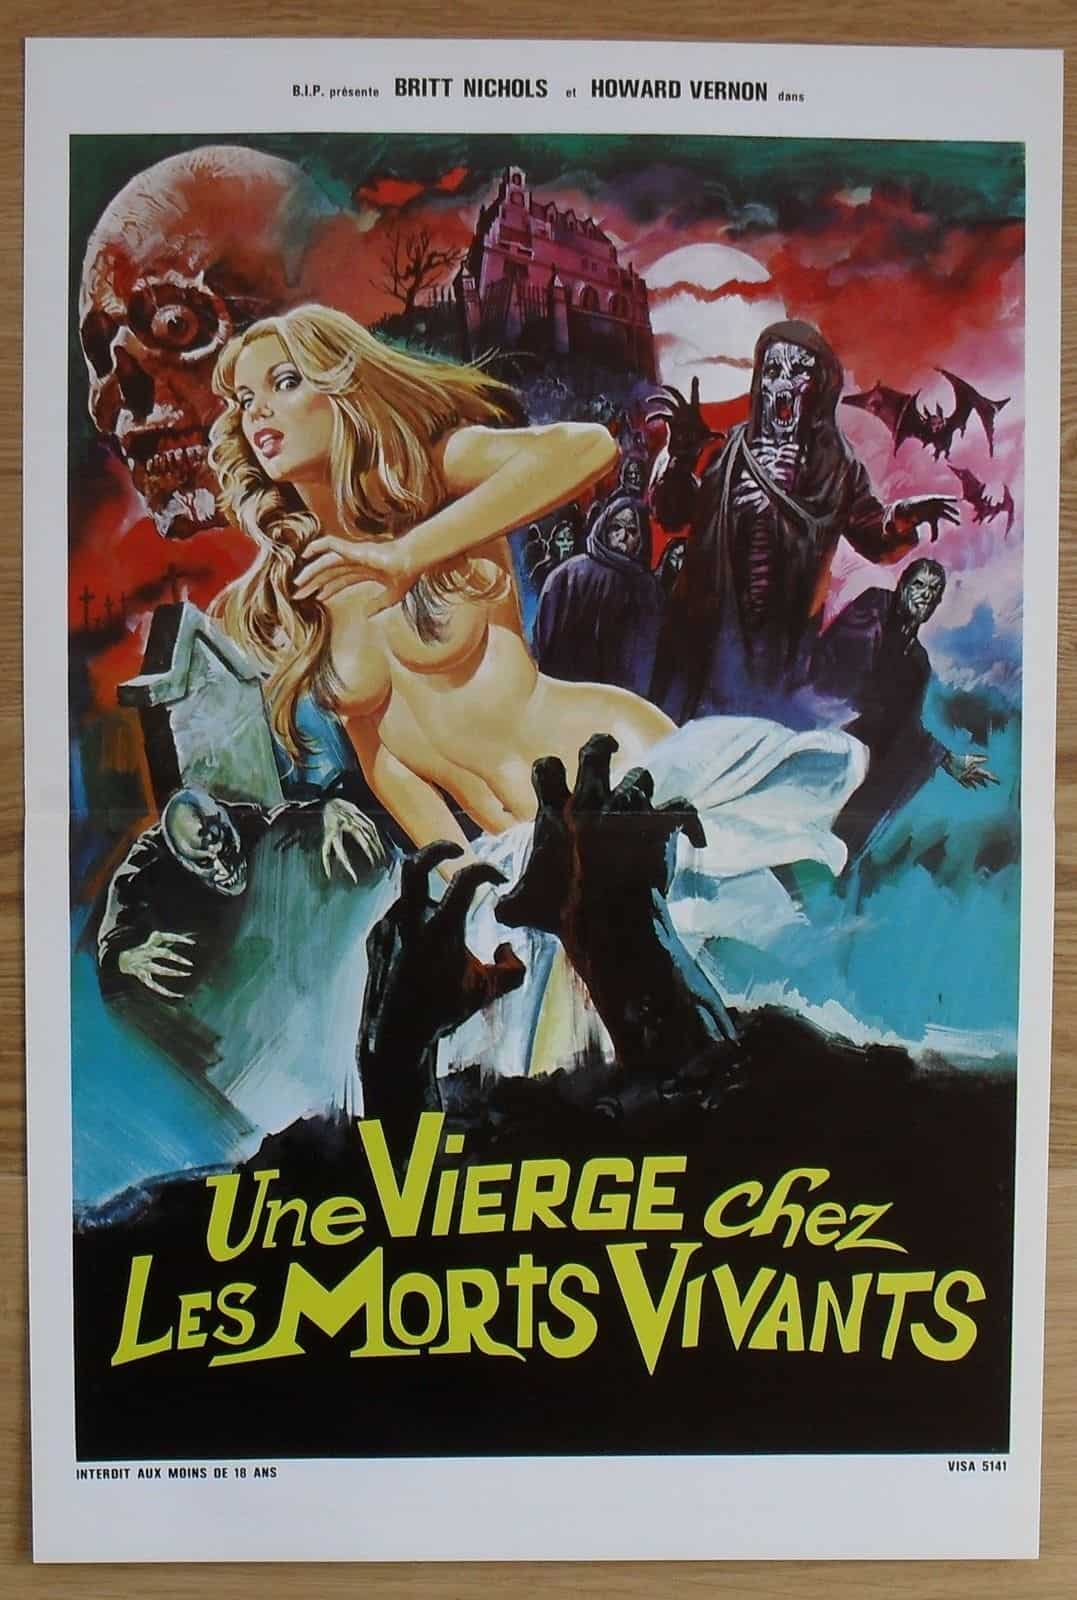 Movie Posters We Love: A Virgin Among the Living Dead (1973)